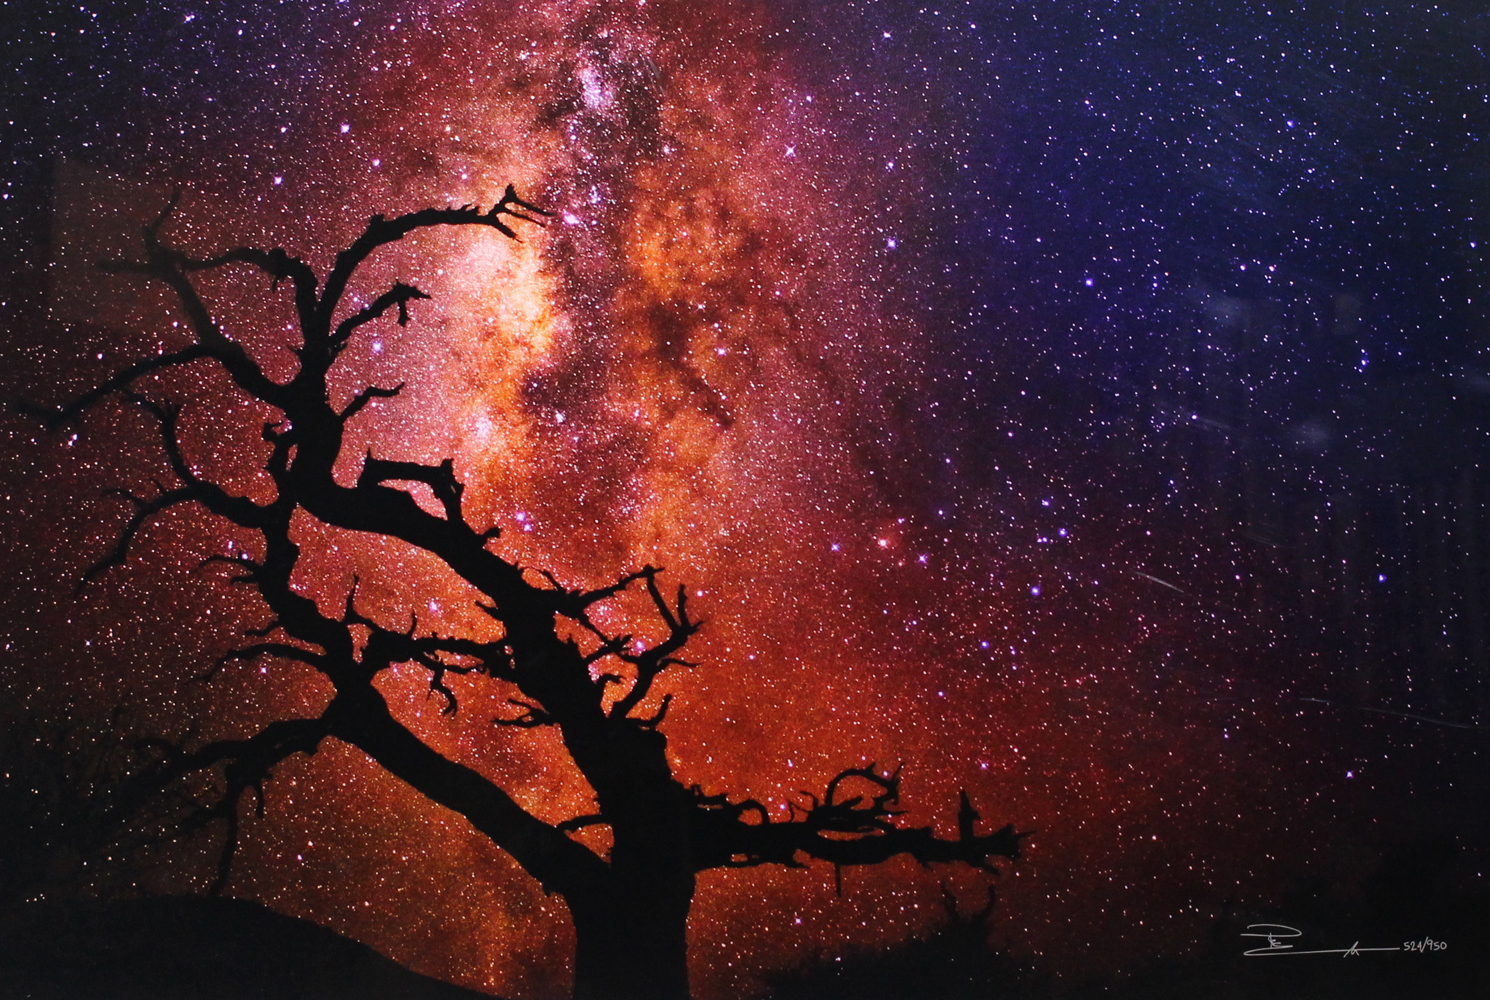 Tree of the Universe (Mauna Kea, Big Island, Hawaii)